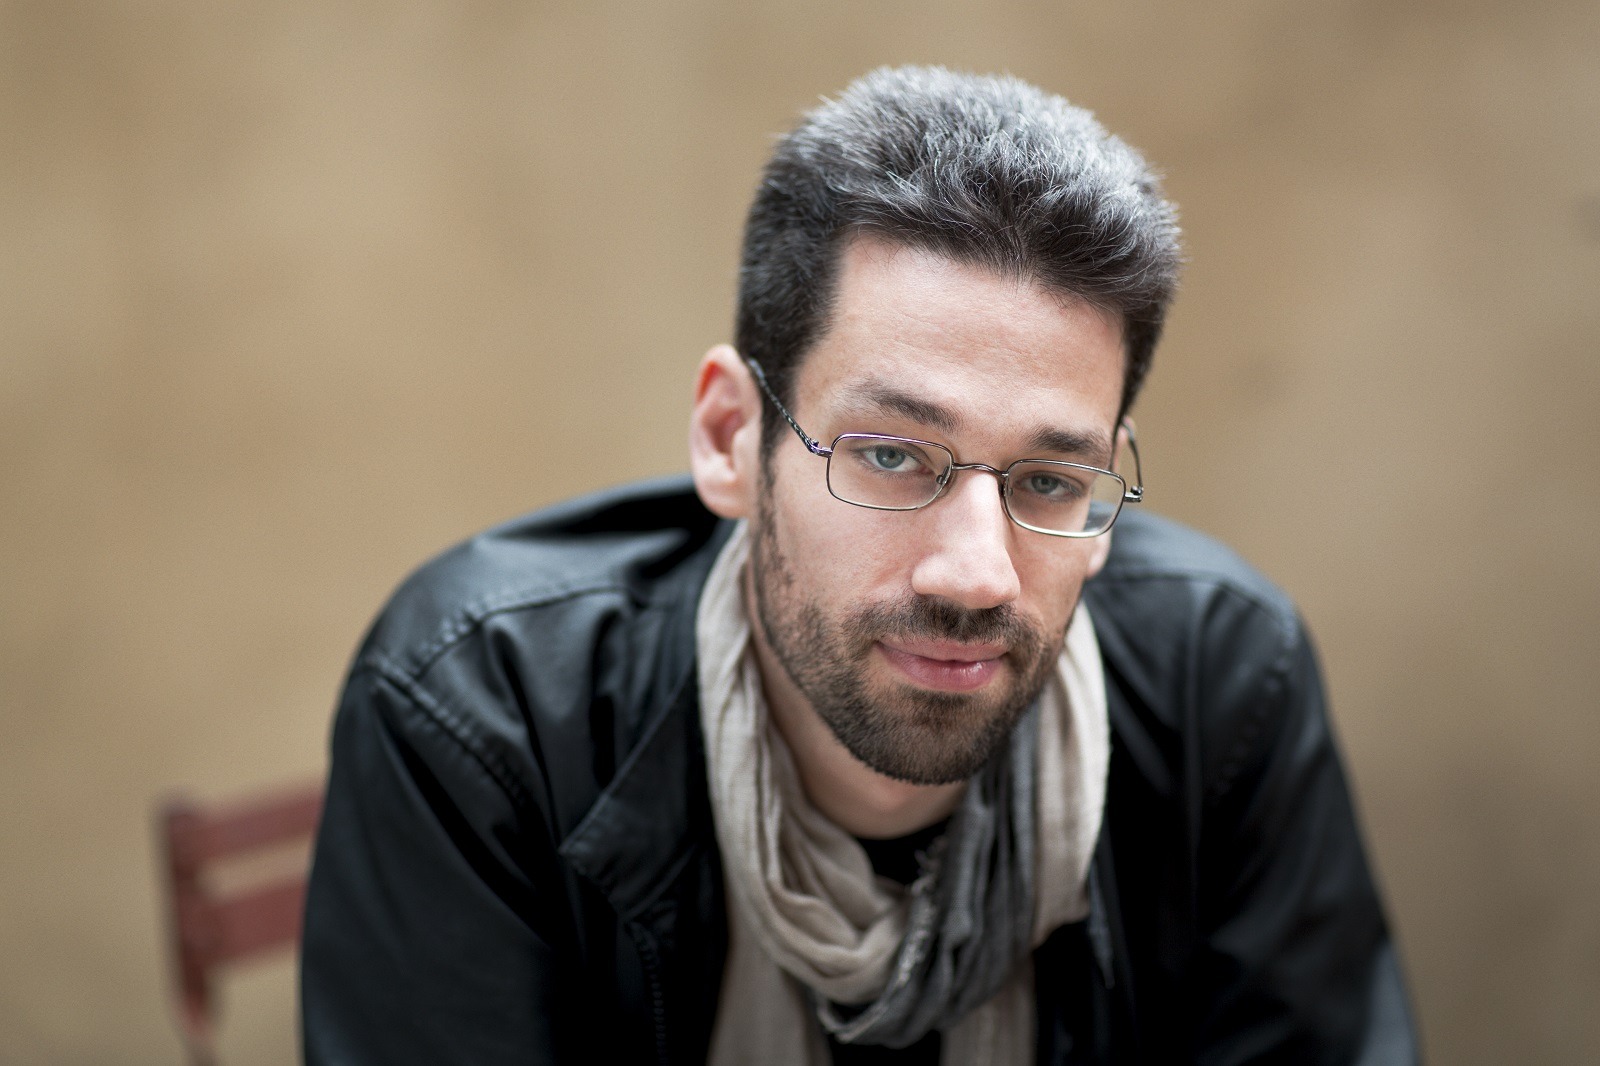 Pianist Jonathan Biss will perform at Lippes Hall at the University of Buffalo. (Photo by Benjamin Ealovega)